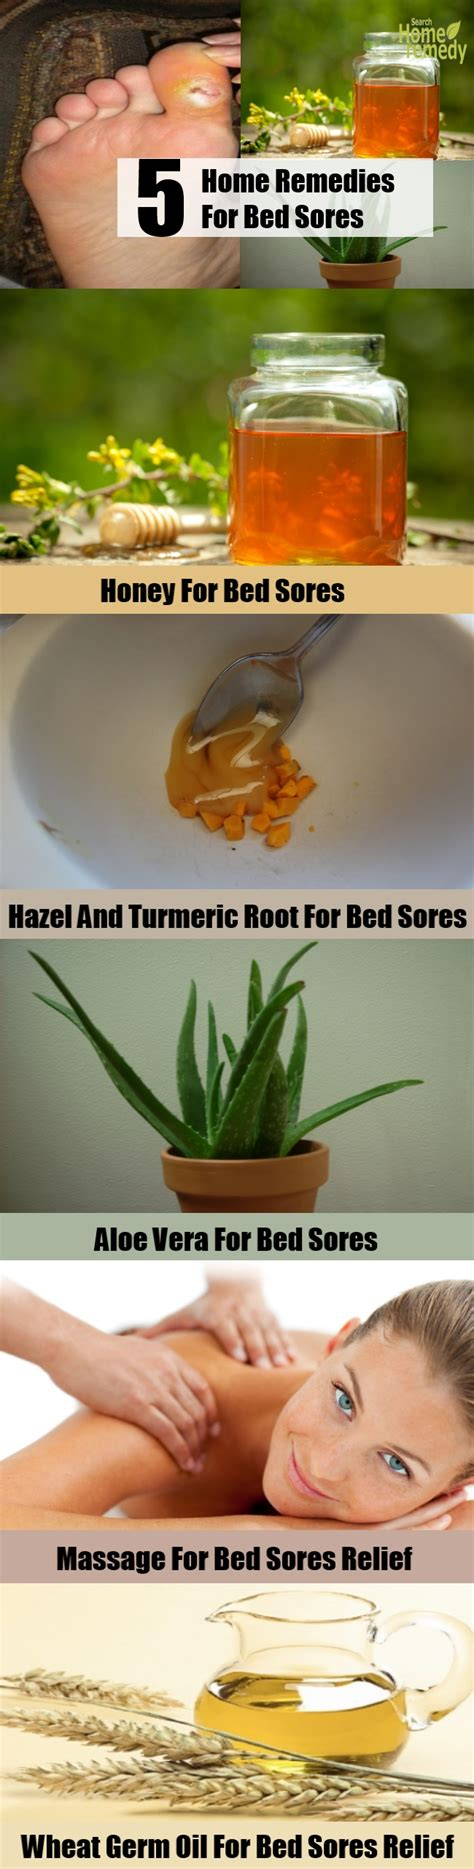 home remedies for bed sores bed sore cream helps treat molluscum contagiosum severe boils shingles hpv warts